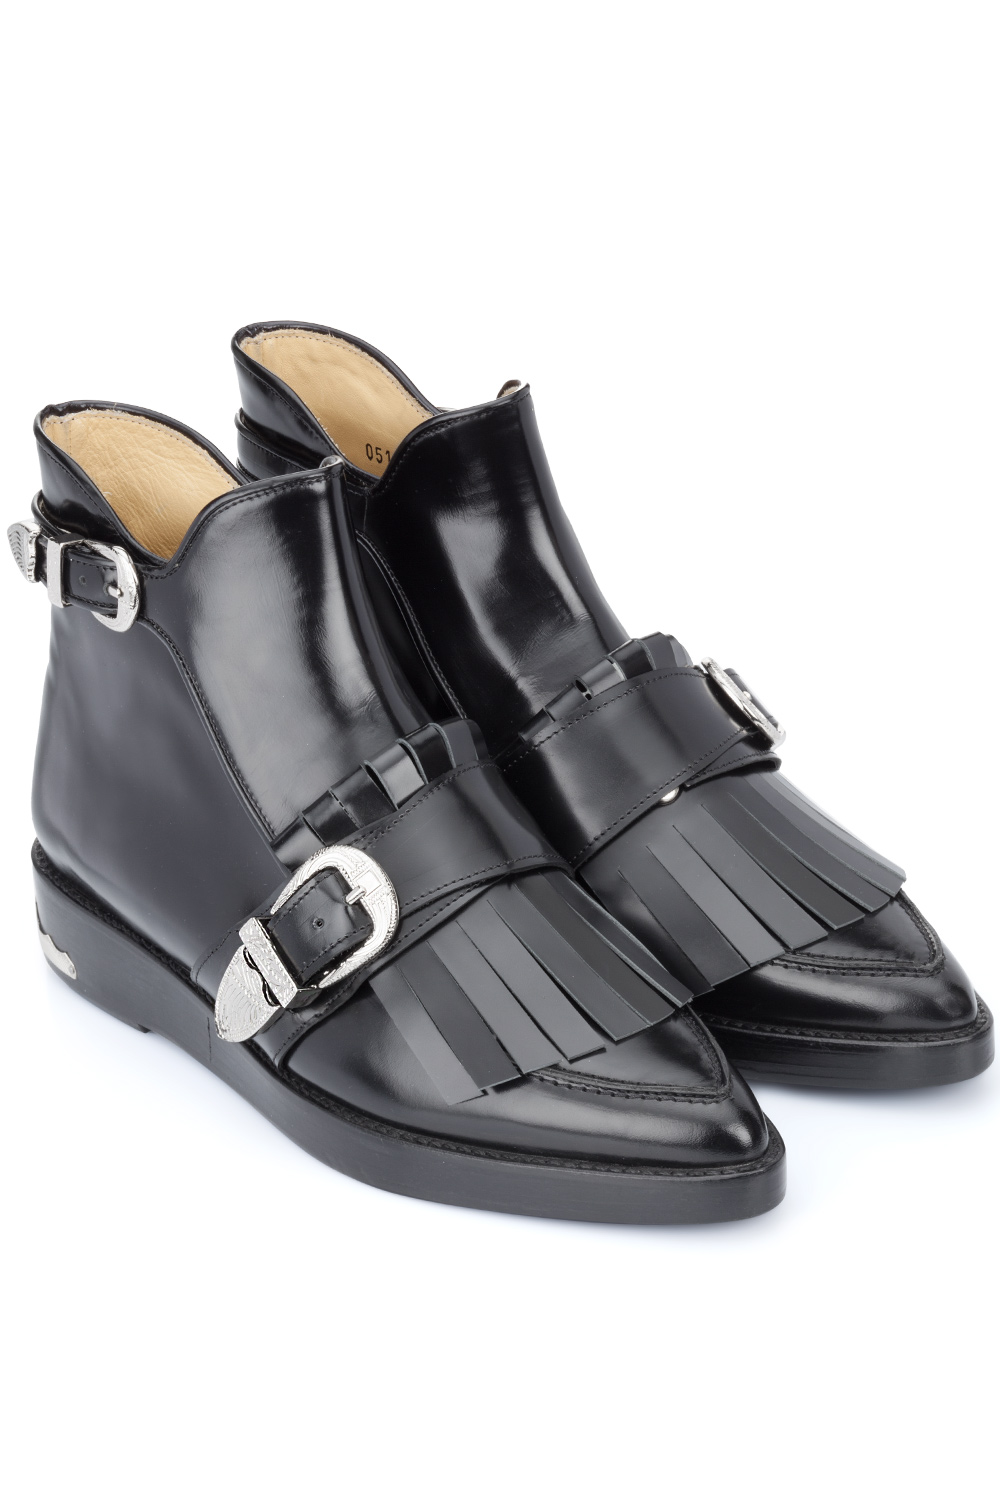 Toga Pulla Black Polido Shoes Black 365ist